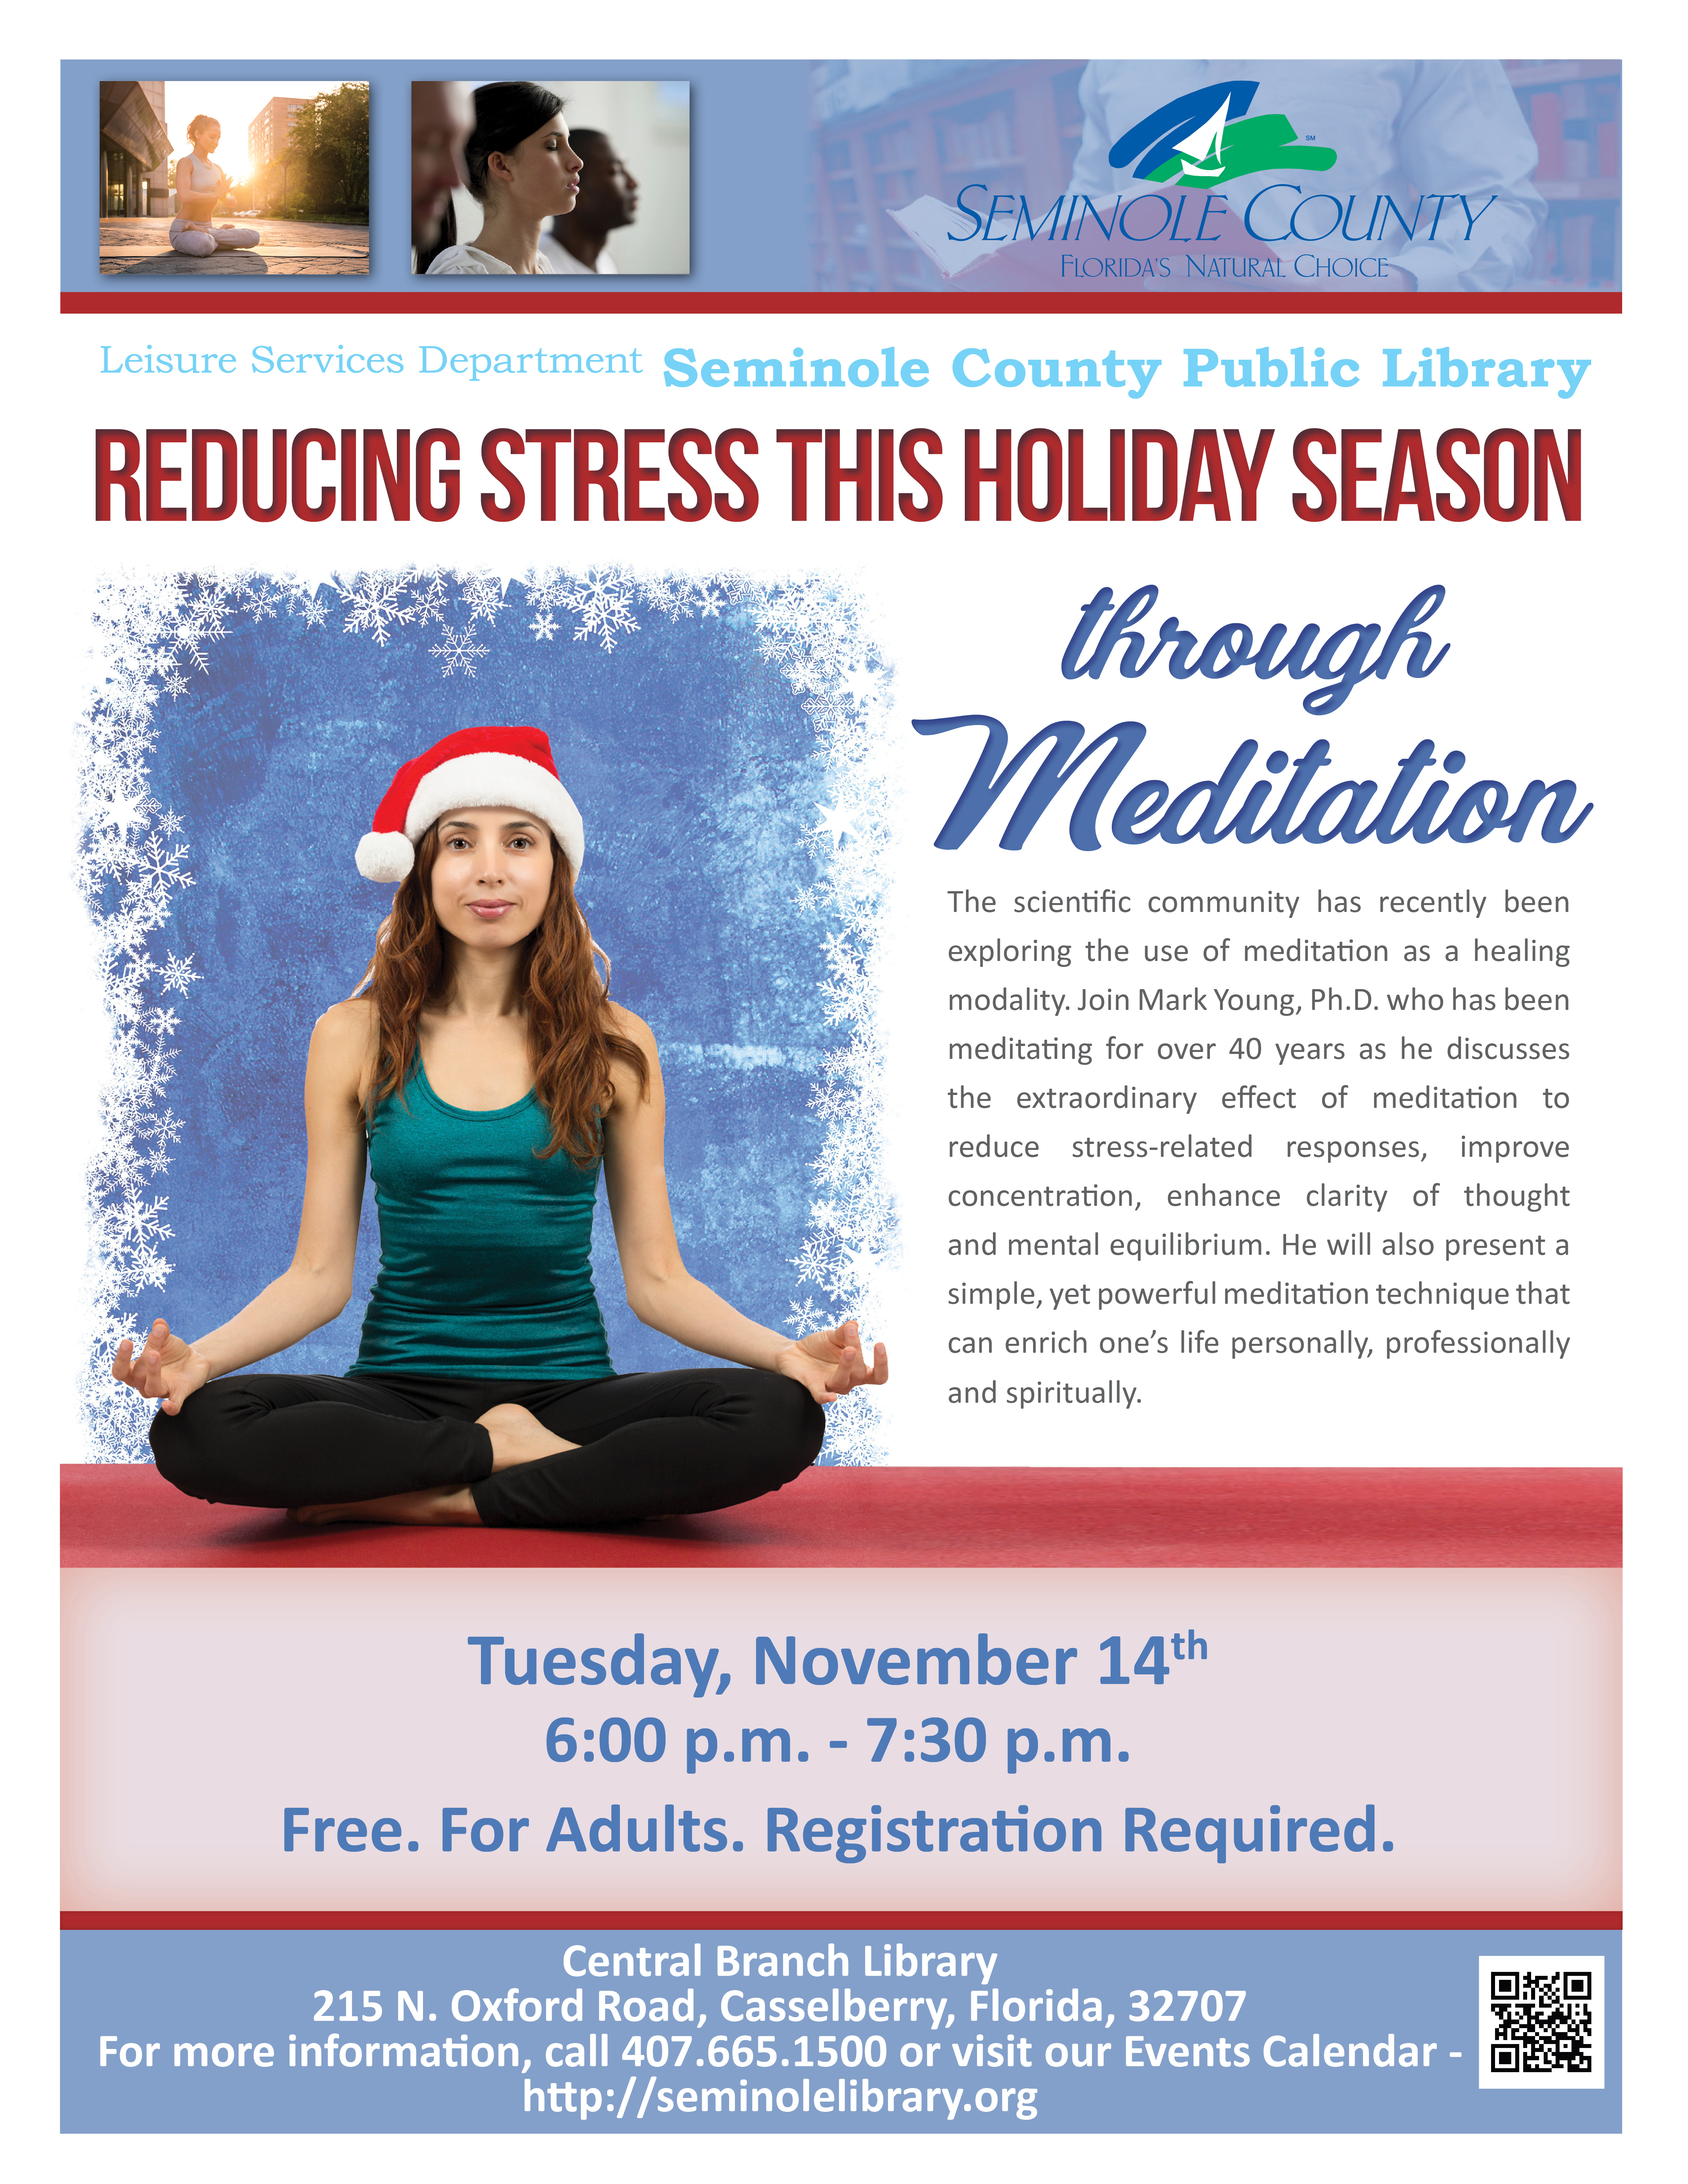 Reducing Stress through Meditation @ Central Branch Library (Casselberry)